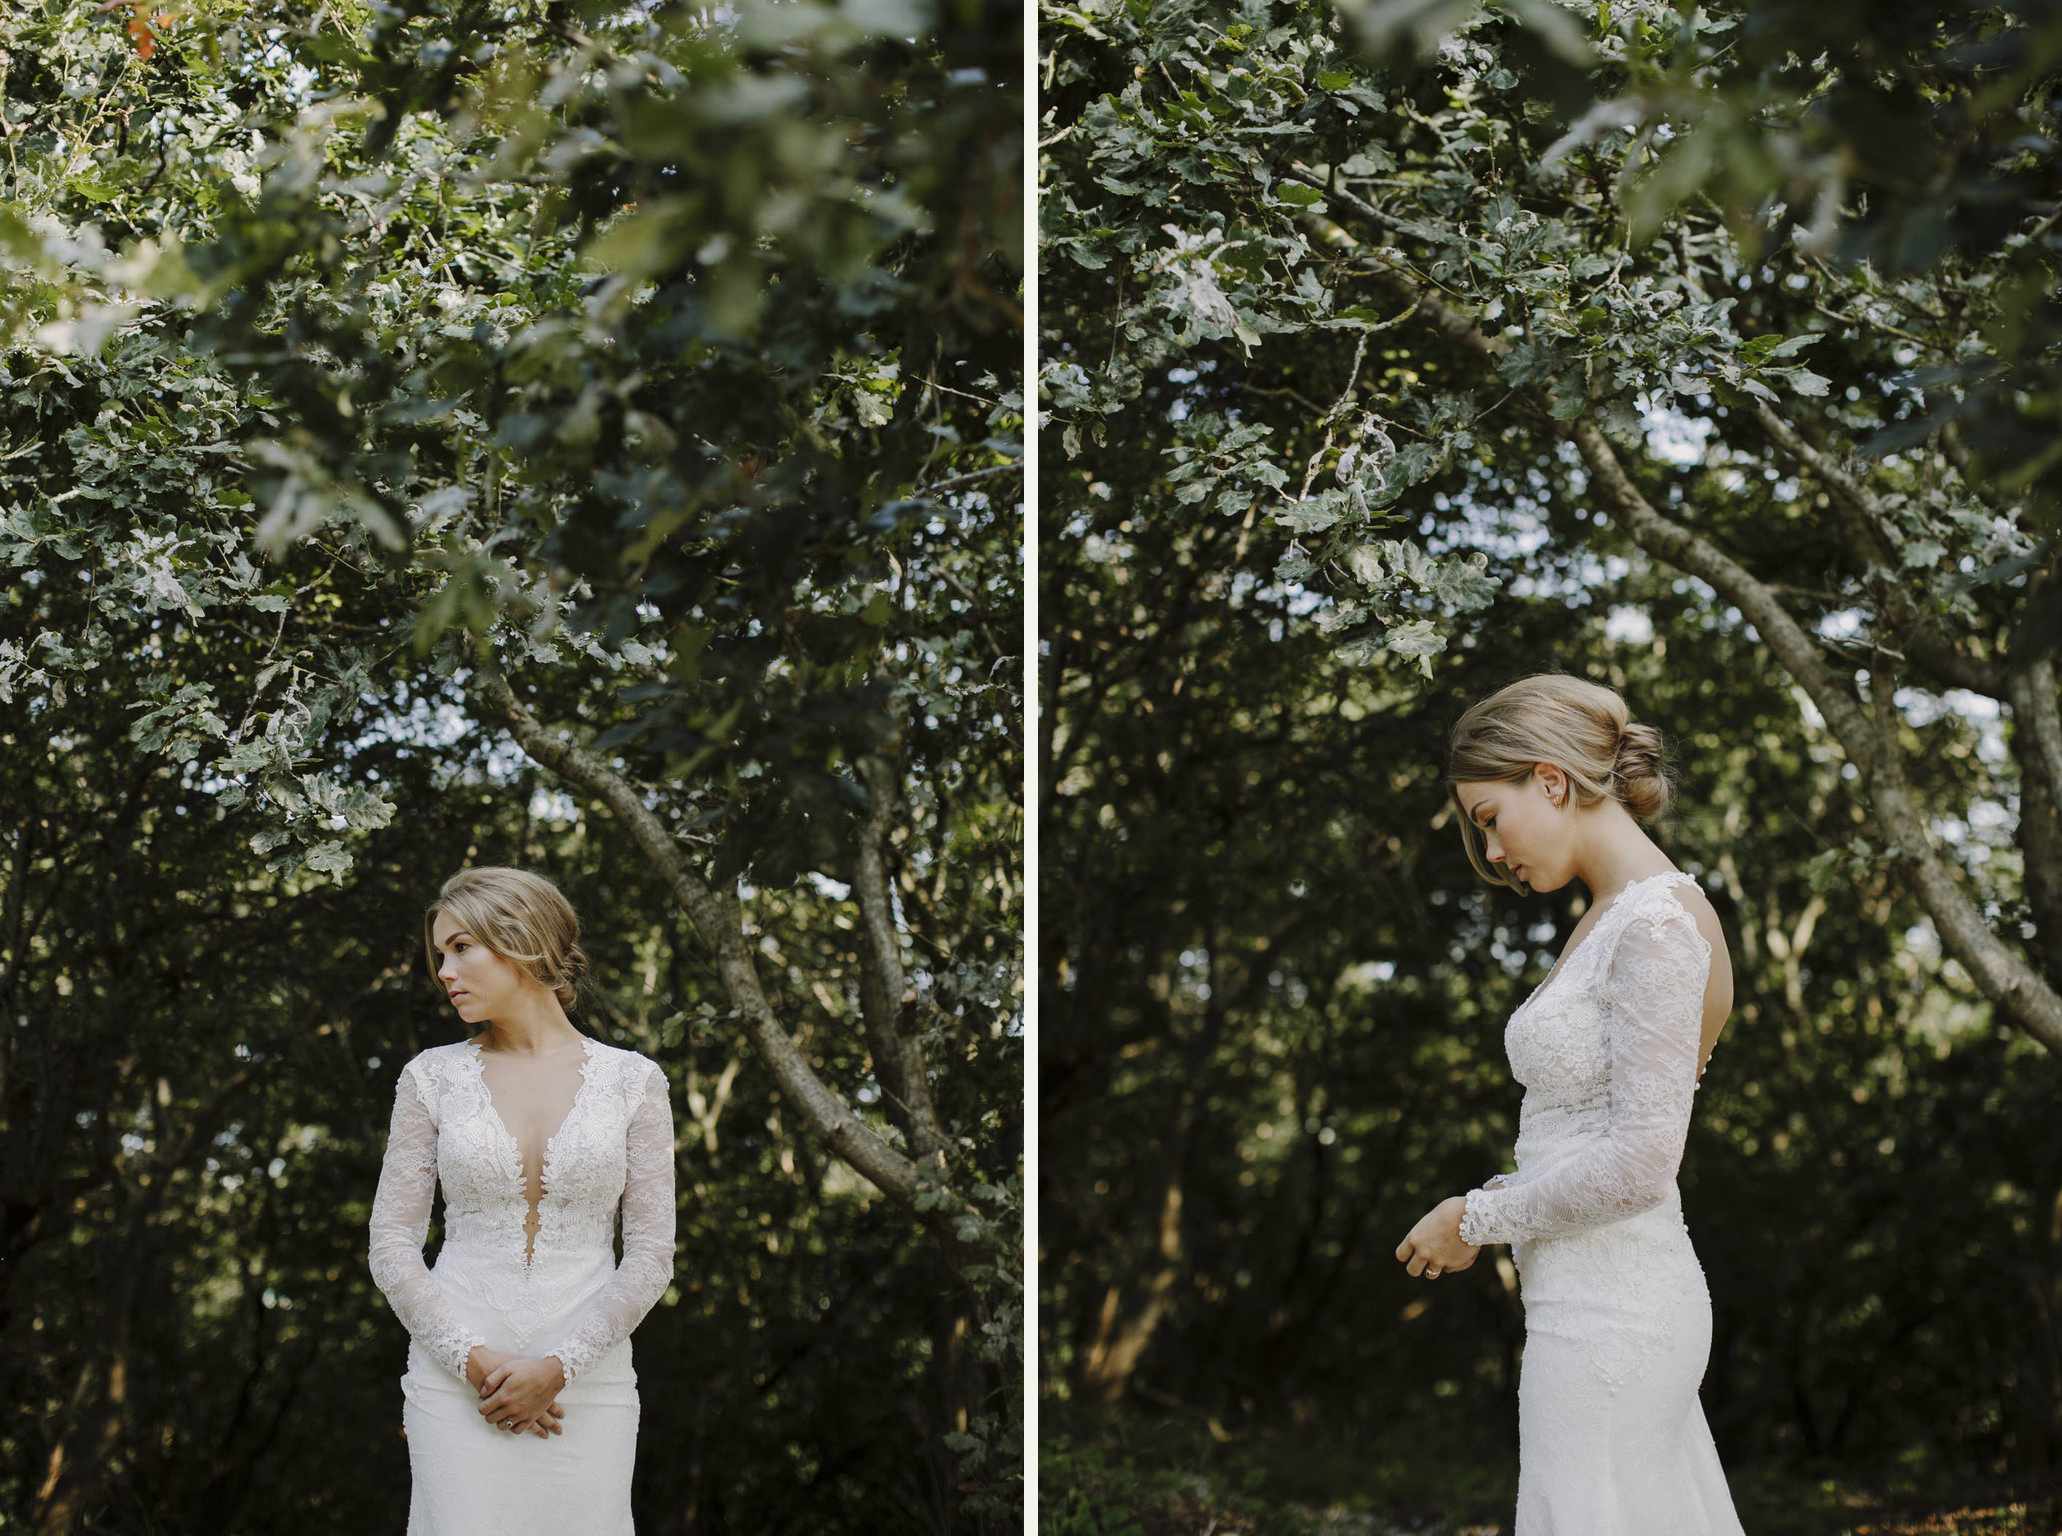 160827_justinaaron_wedding_cora_floris_preview-63-diptych.jpg